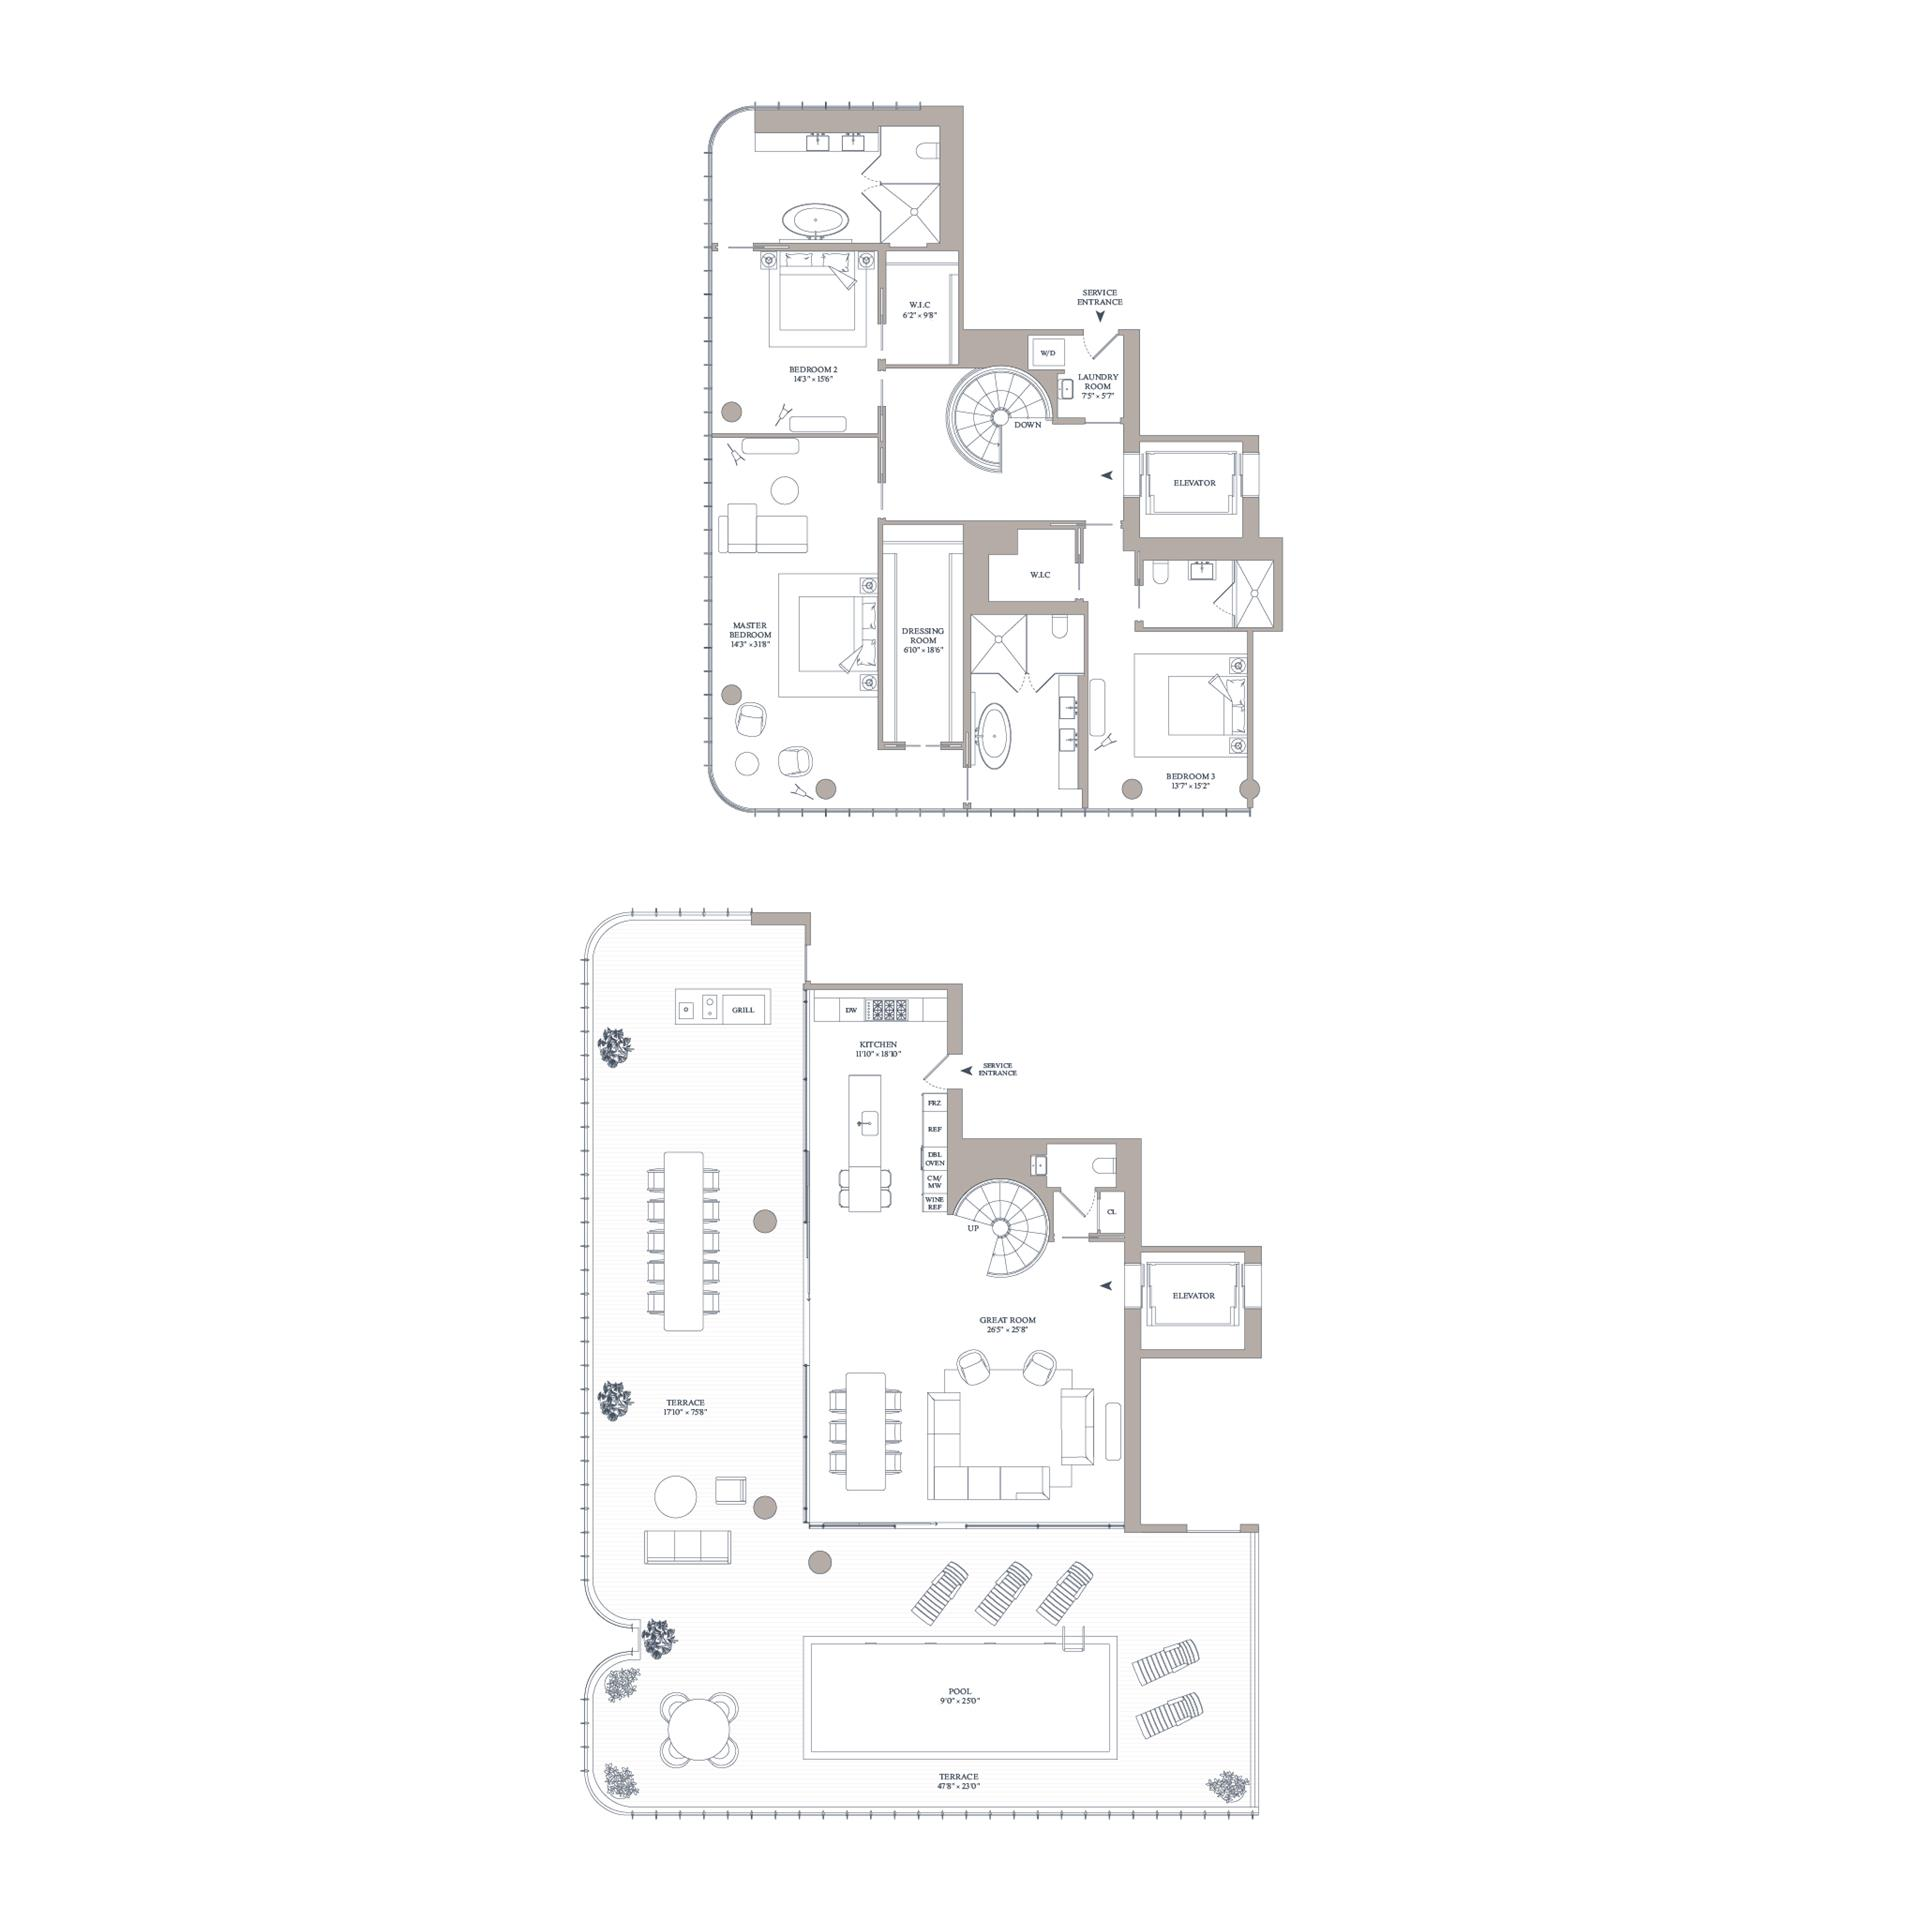 Floor plan of 565 Broome St, S16A - SoHo - Nolita, New York